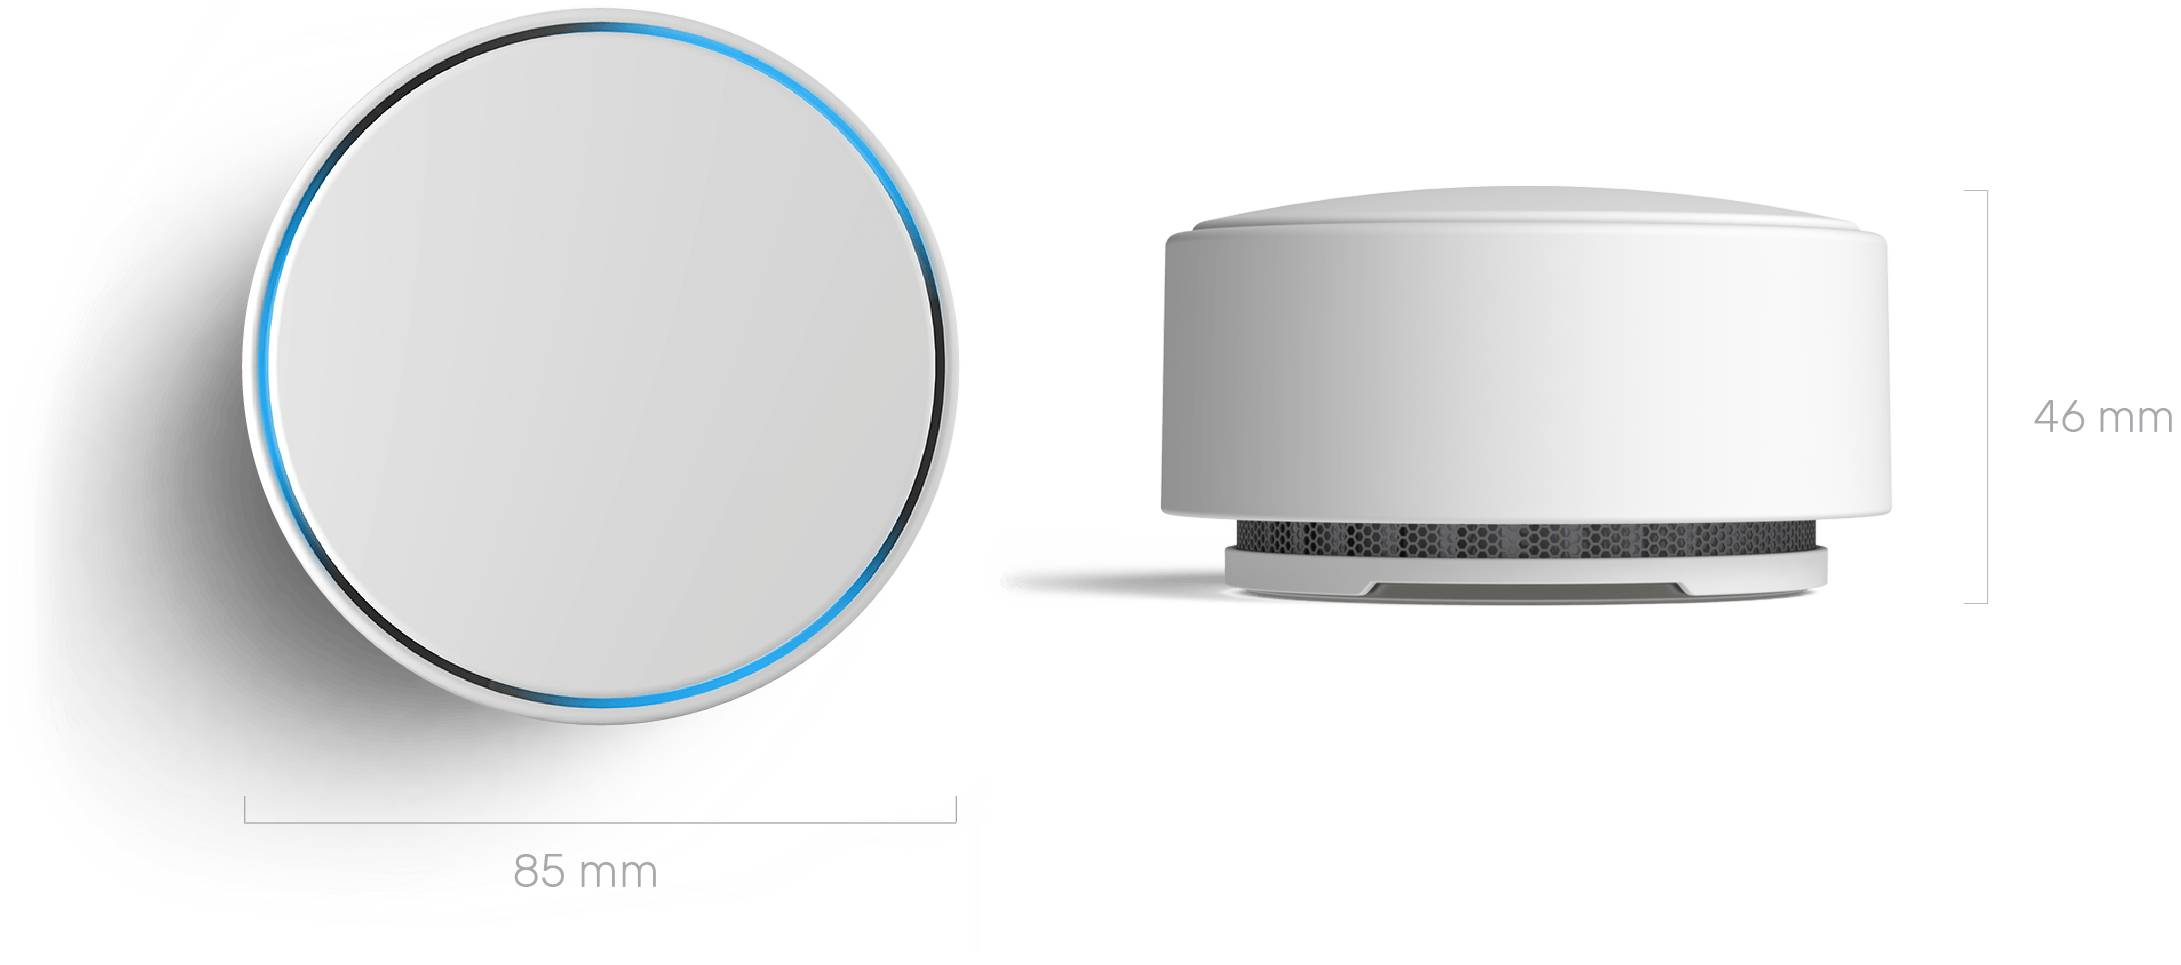 Minut - Smart Home Sensor MT-P2